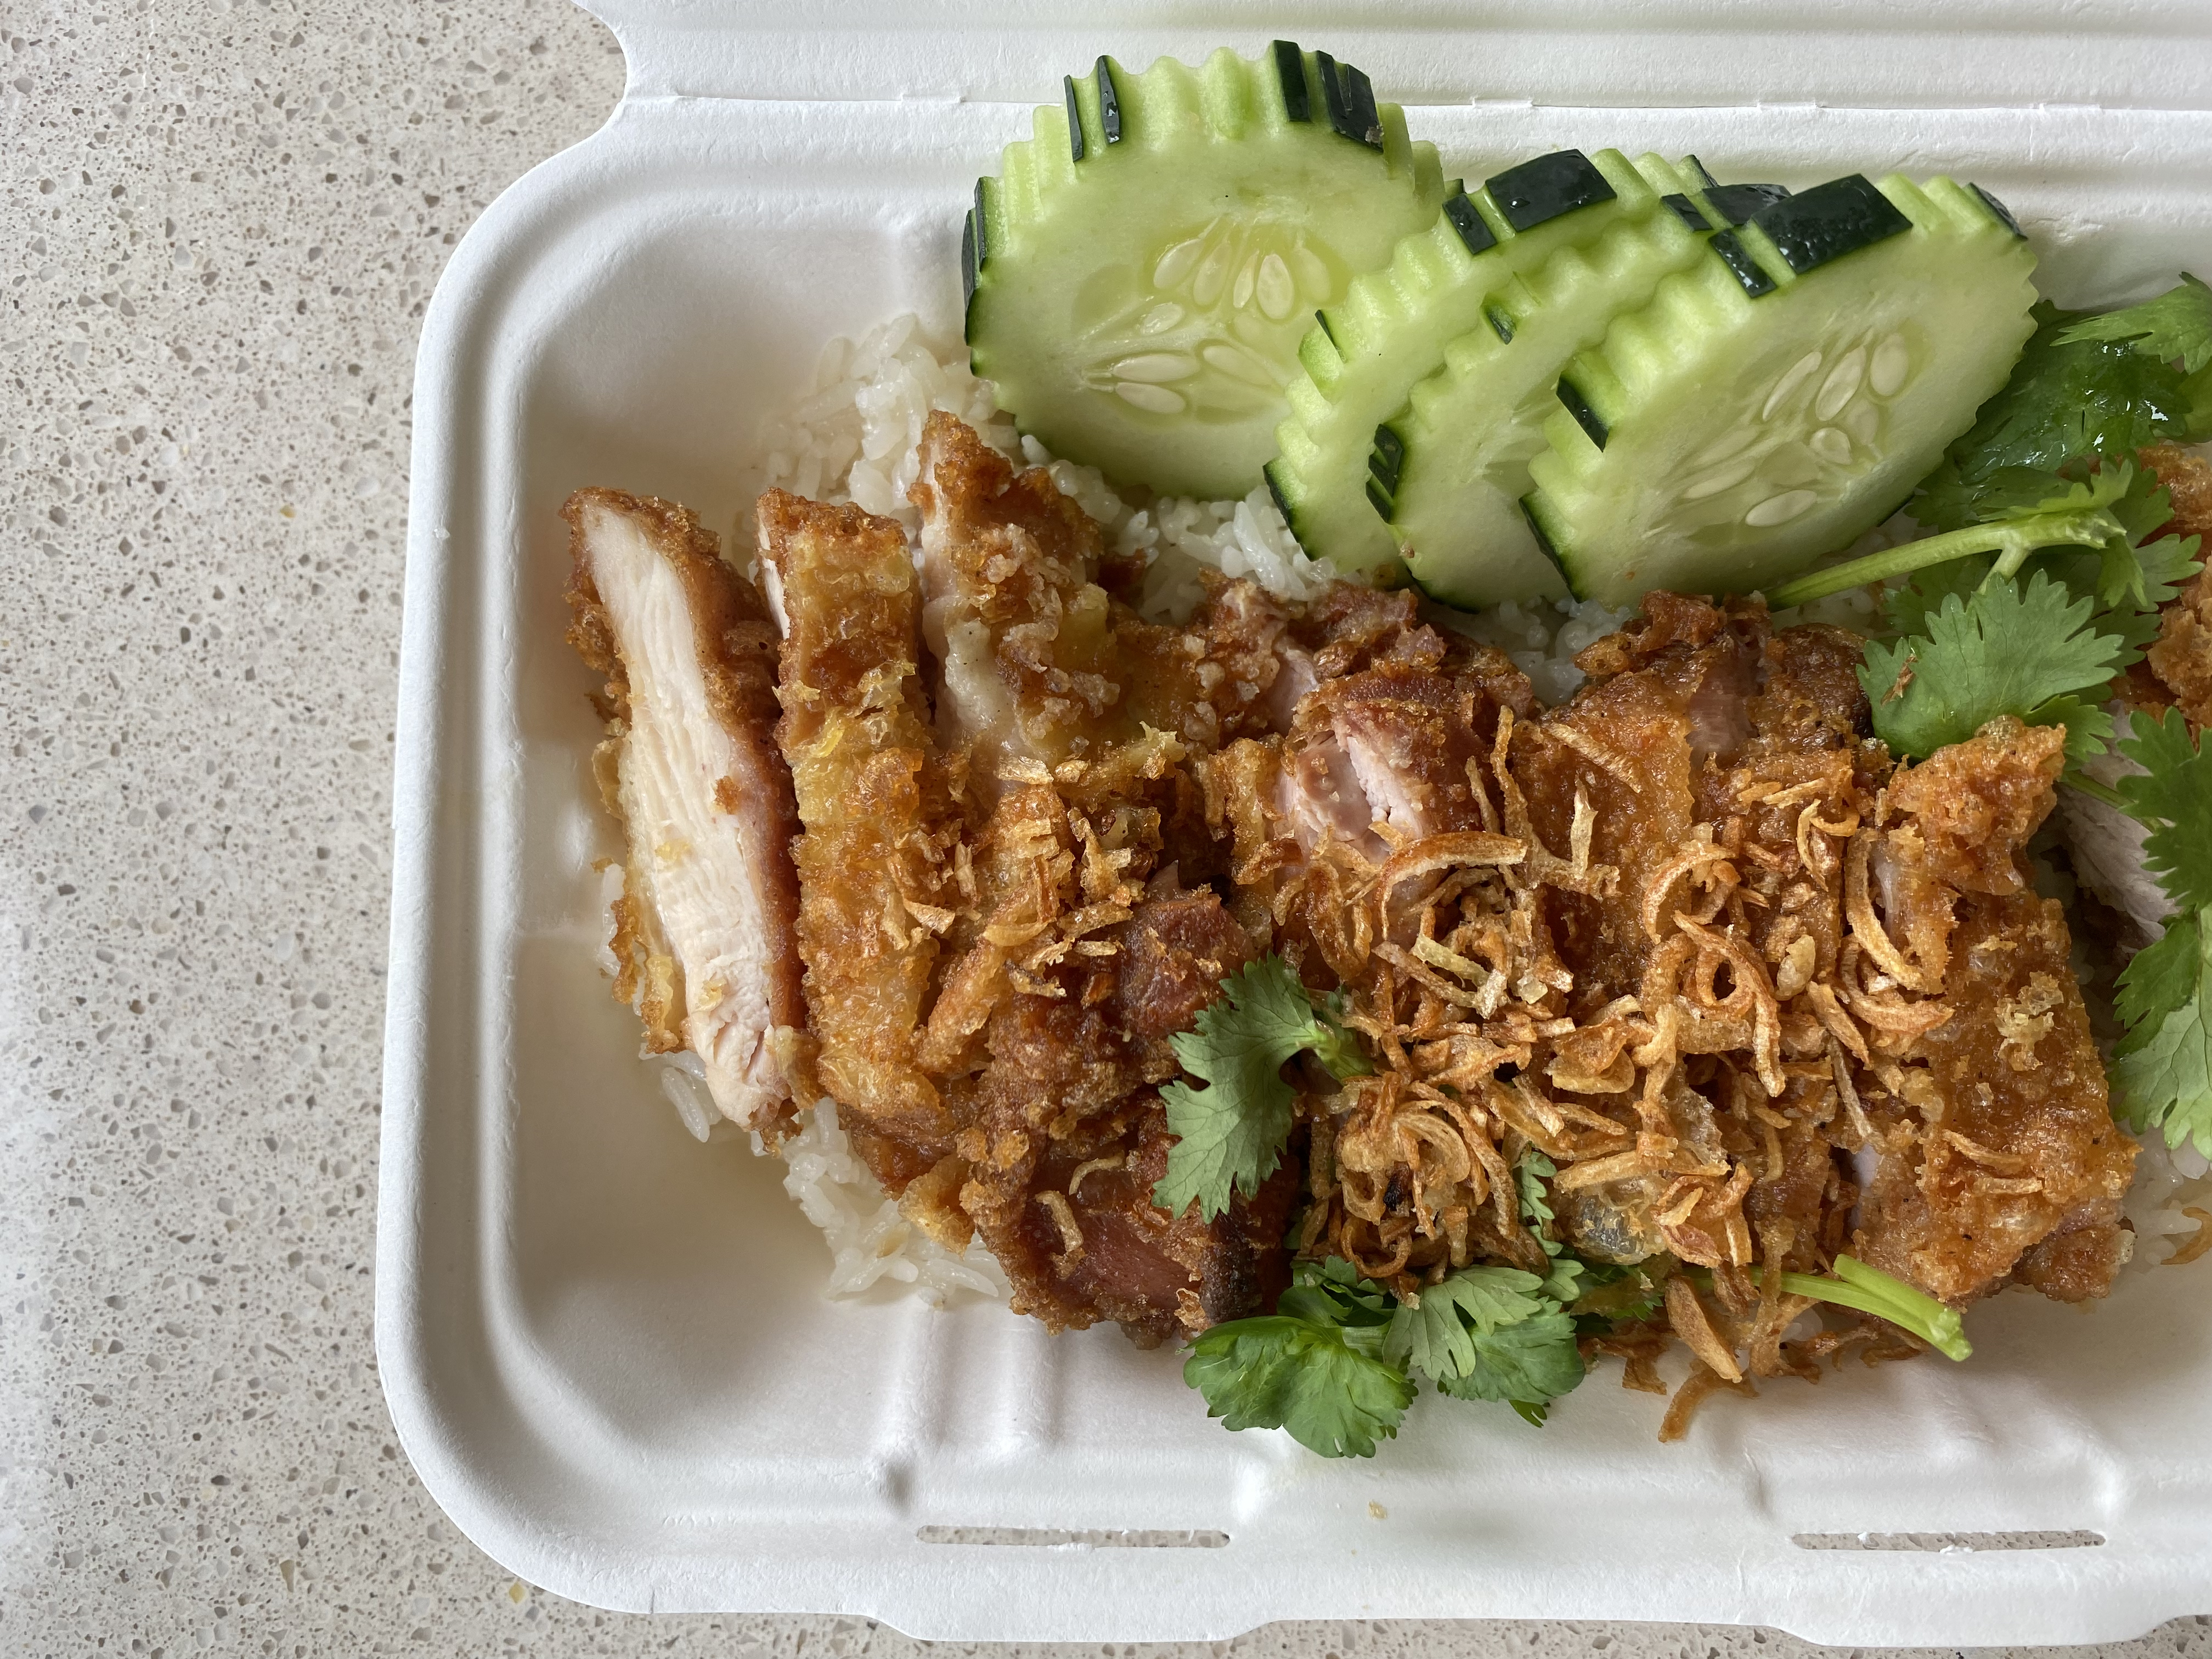 Sliced golden fried chicken sits next to cucumbers and over a pile of rice; springs of verdant cilantro are scattered about